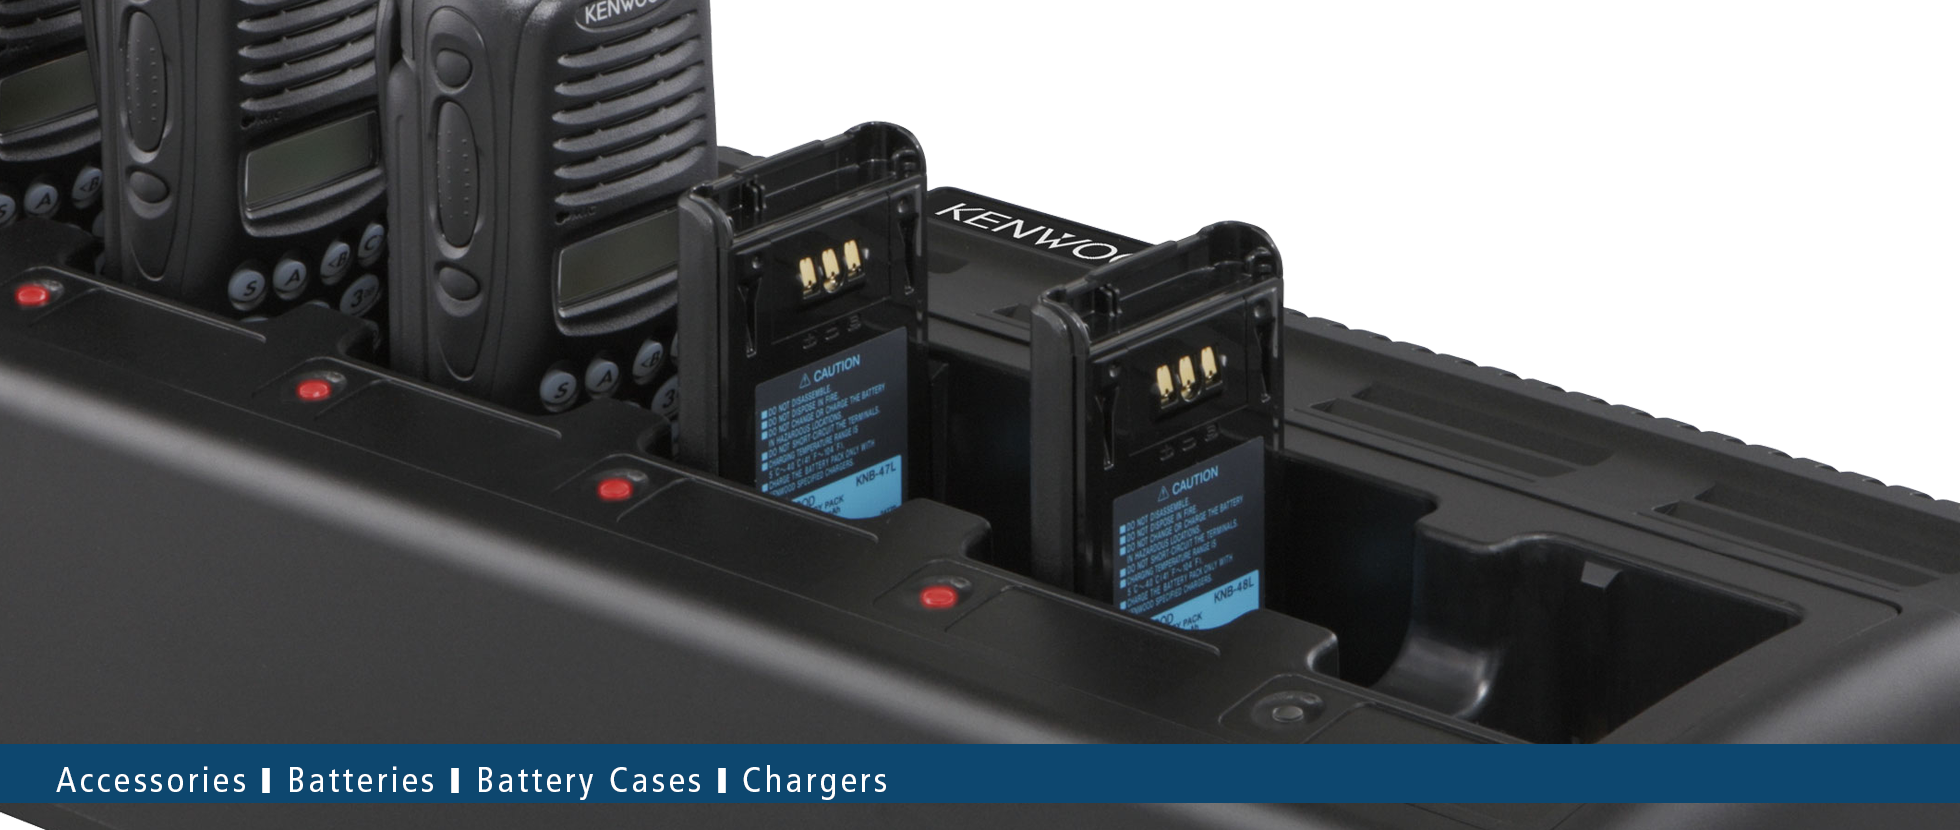 acc-batteries_chargers1